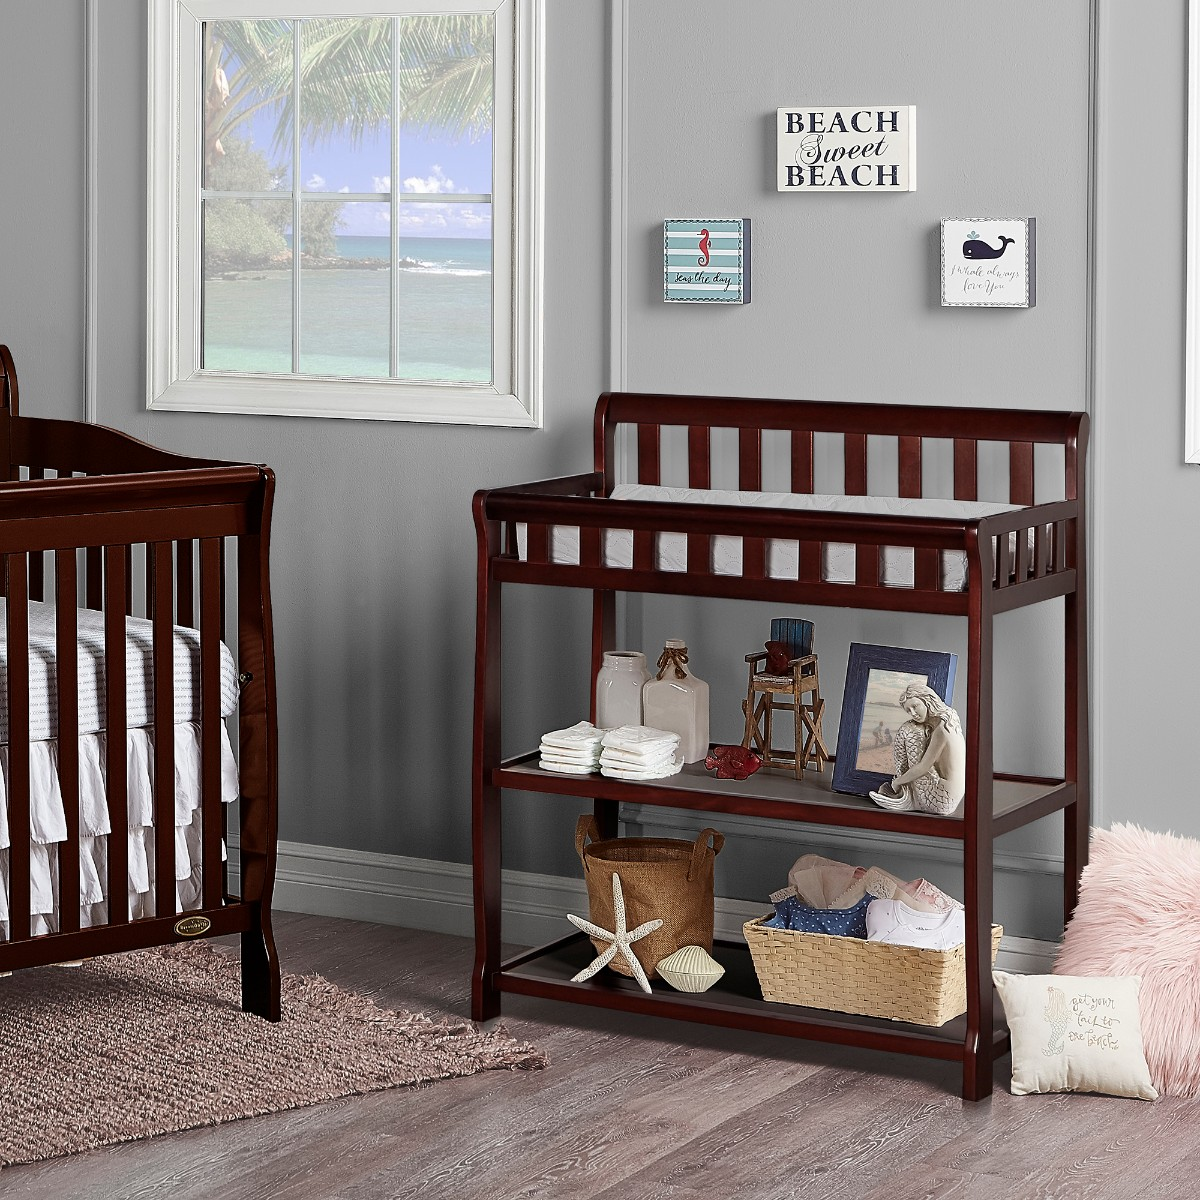 Ashton Changing Table - Dream On Me 604-E